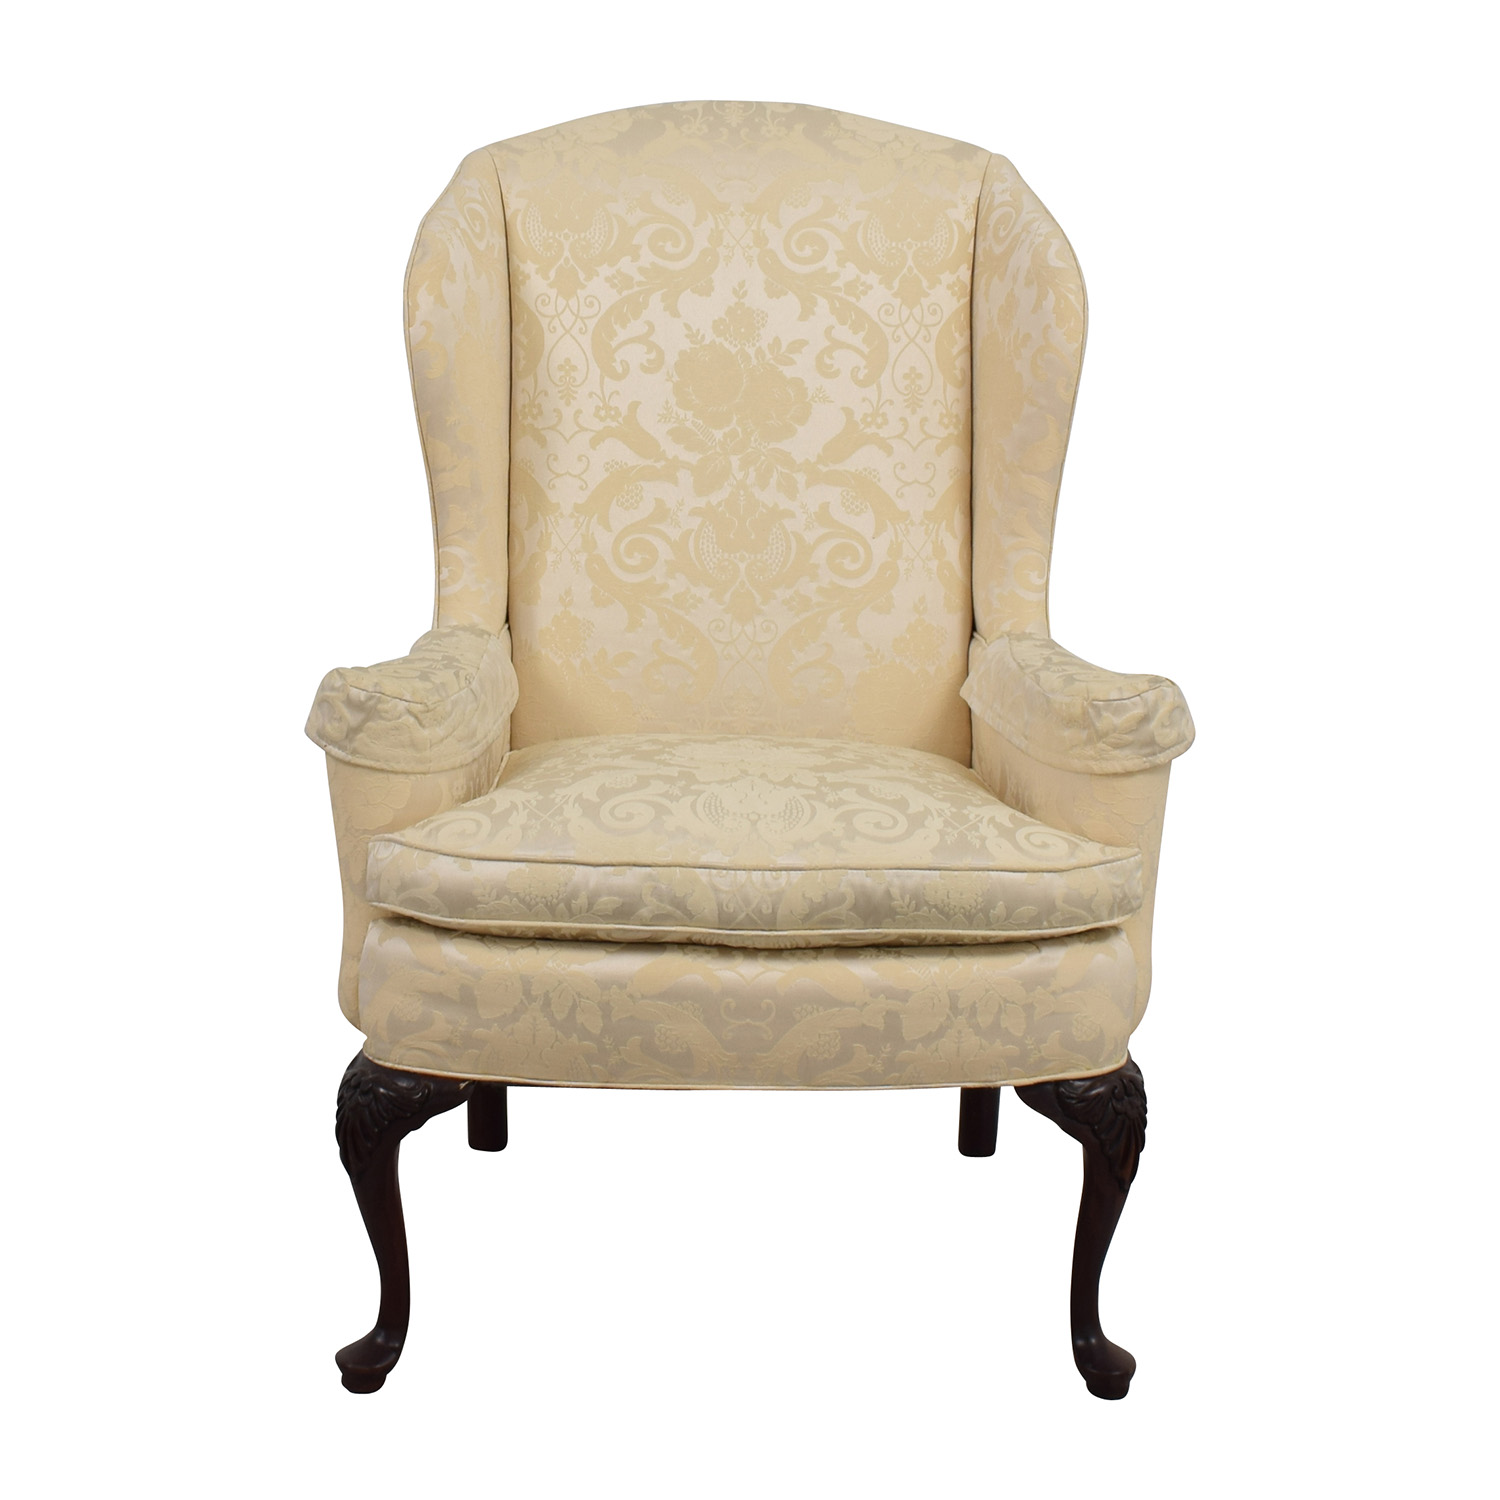 71% OFF Nicoletti Nicoletti Green Accent Chair Chairs